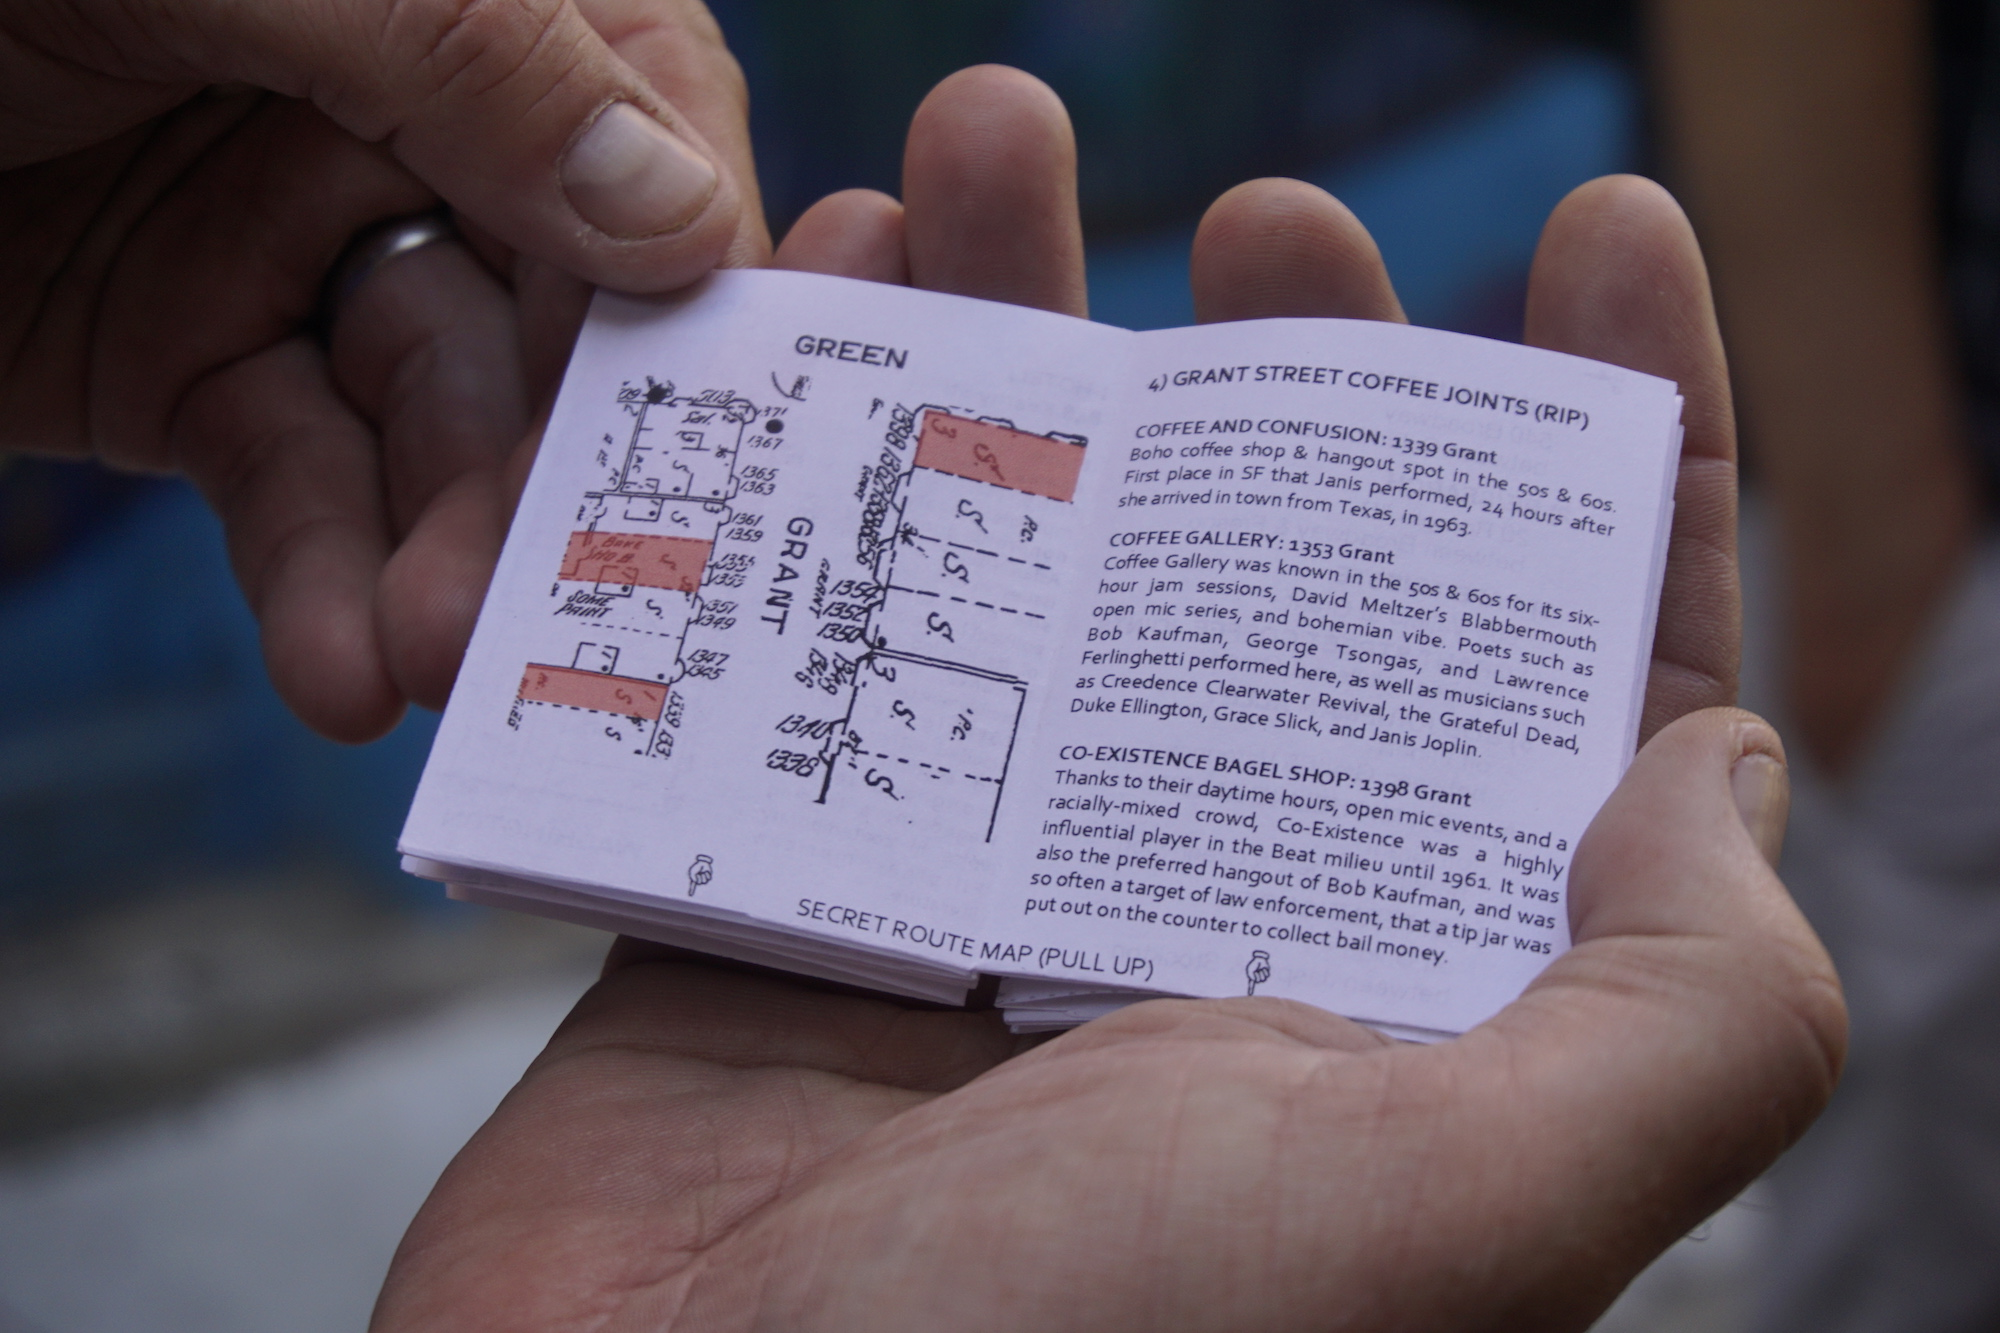 A pair of hands holding a small zine, opened to a page entitled Grant Street Coffee Joints (RIP)